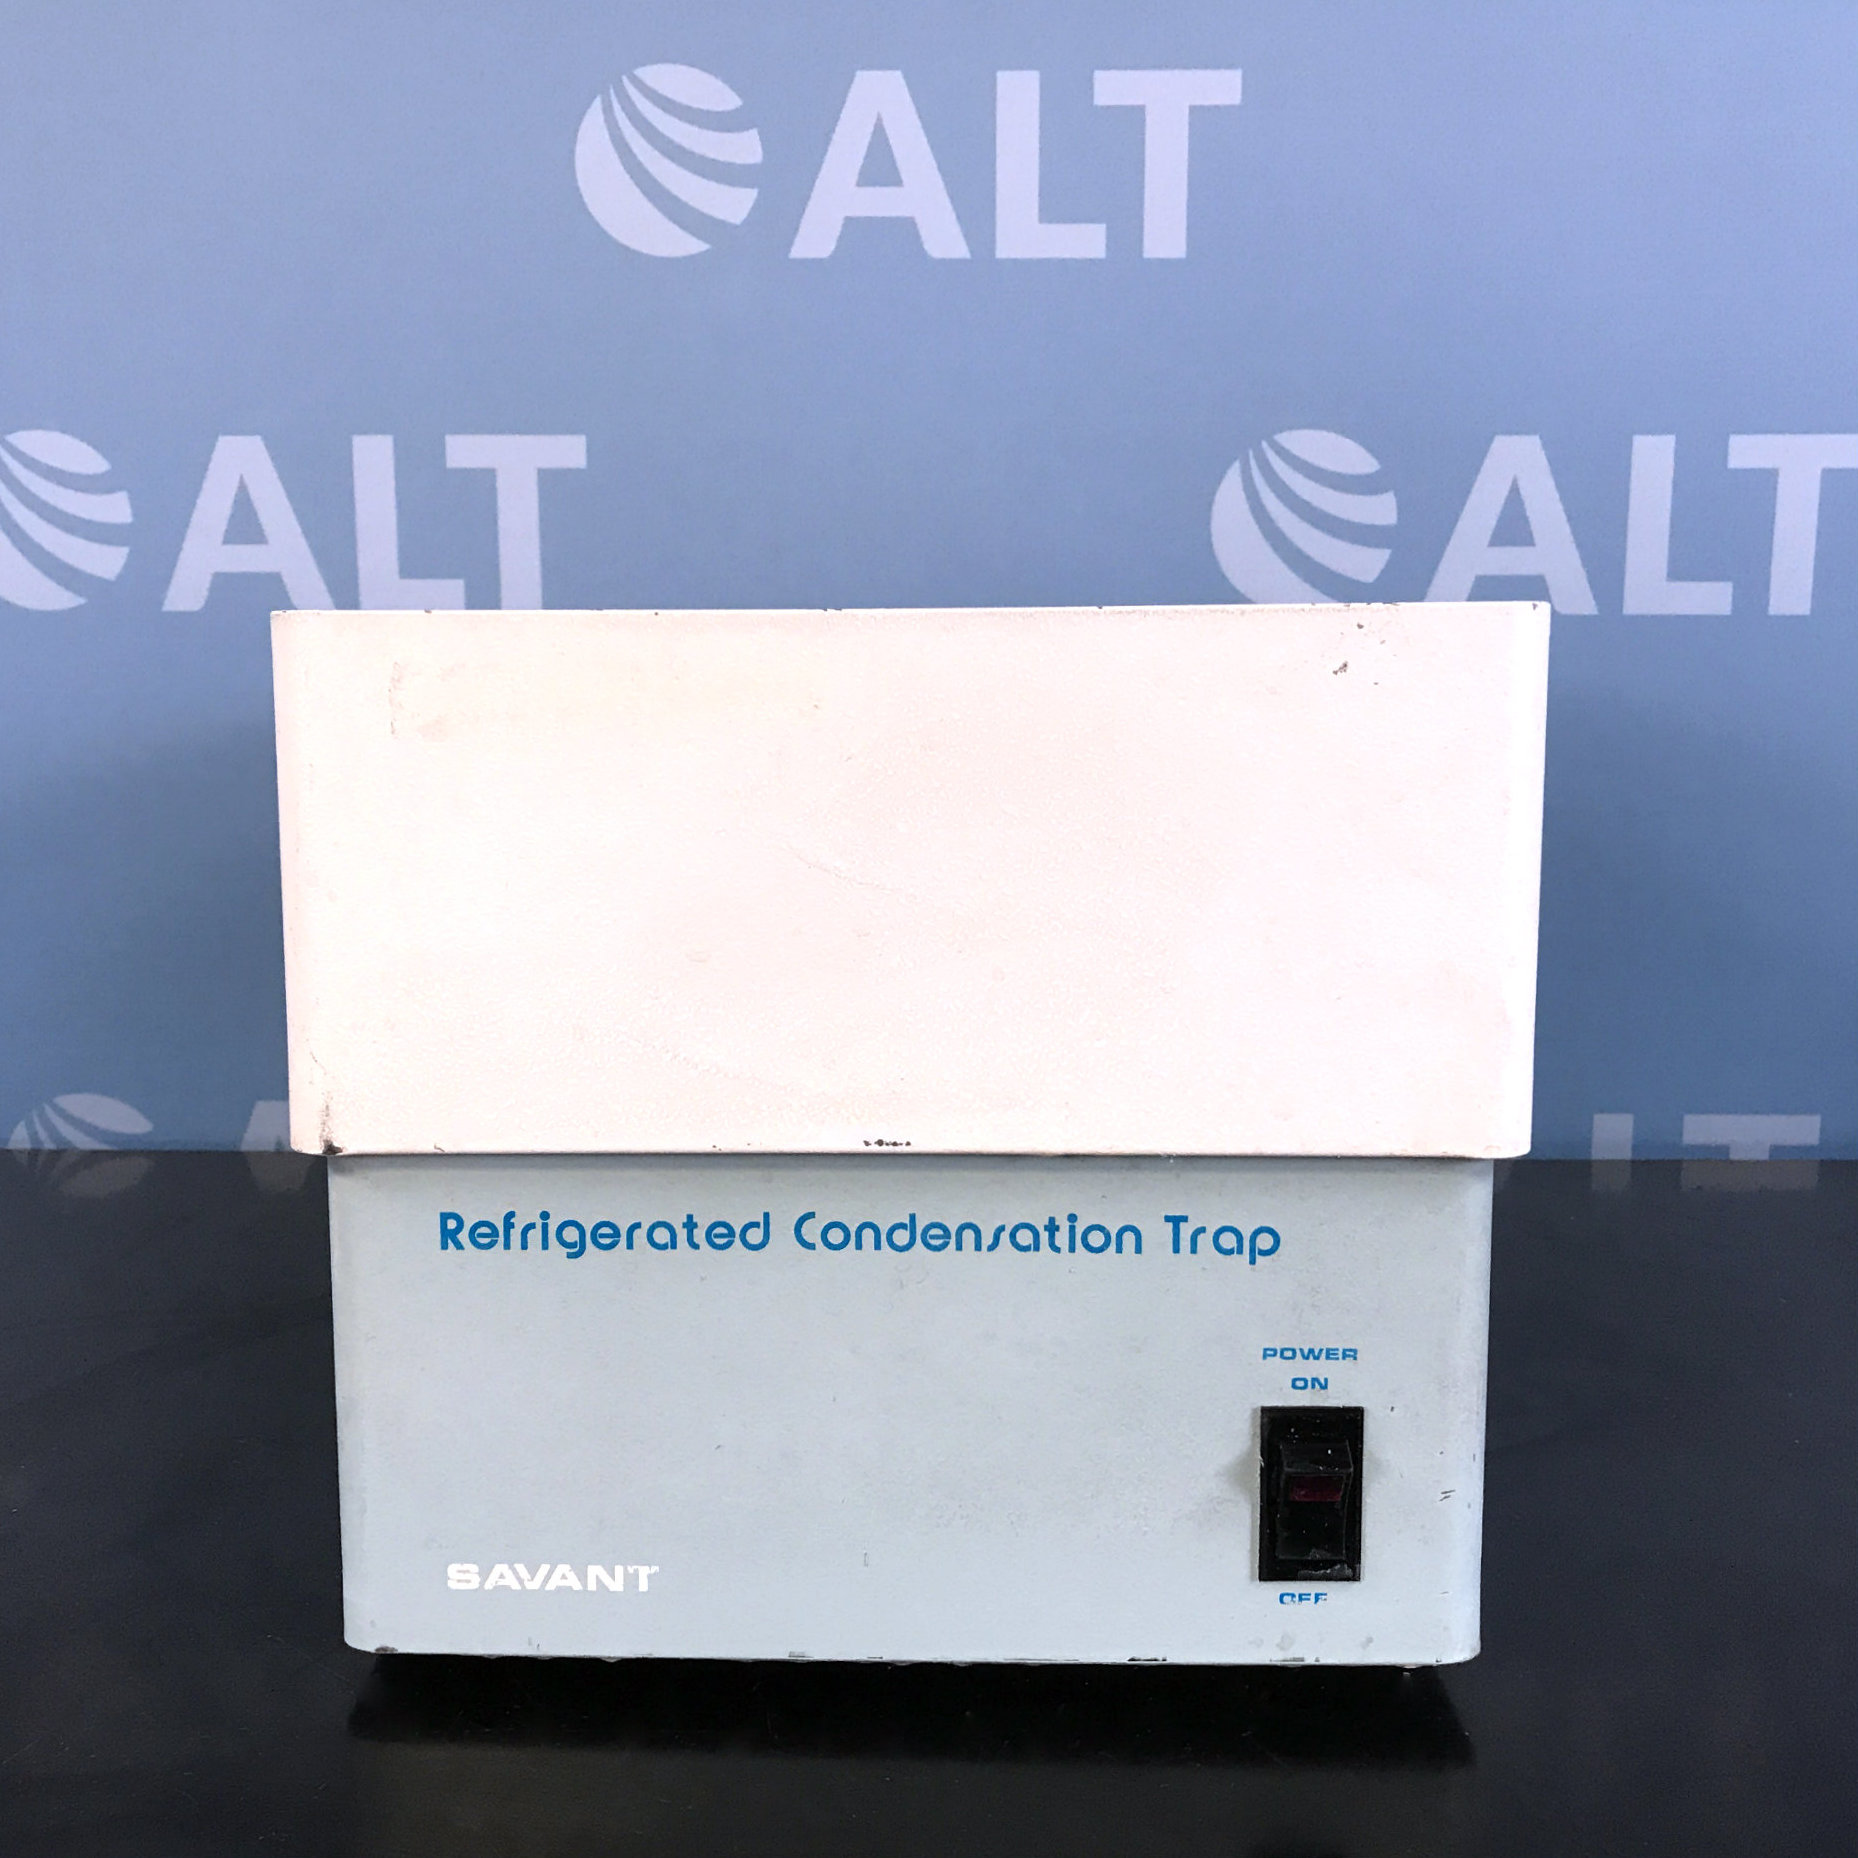 Savant RT100A Refrigerated Condensation Trap Image